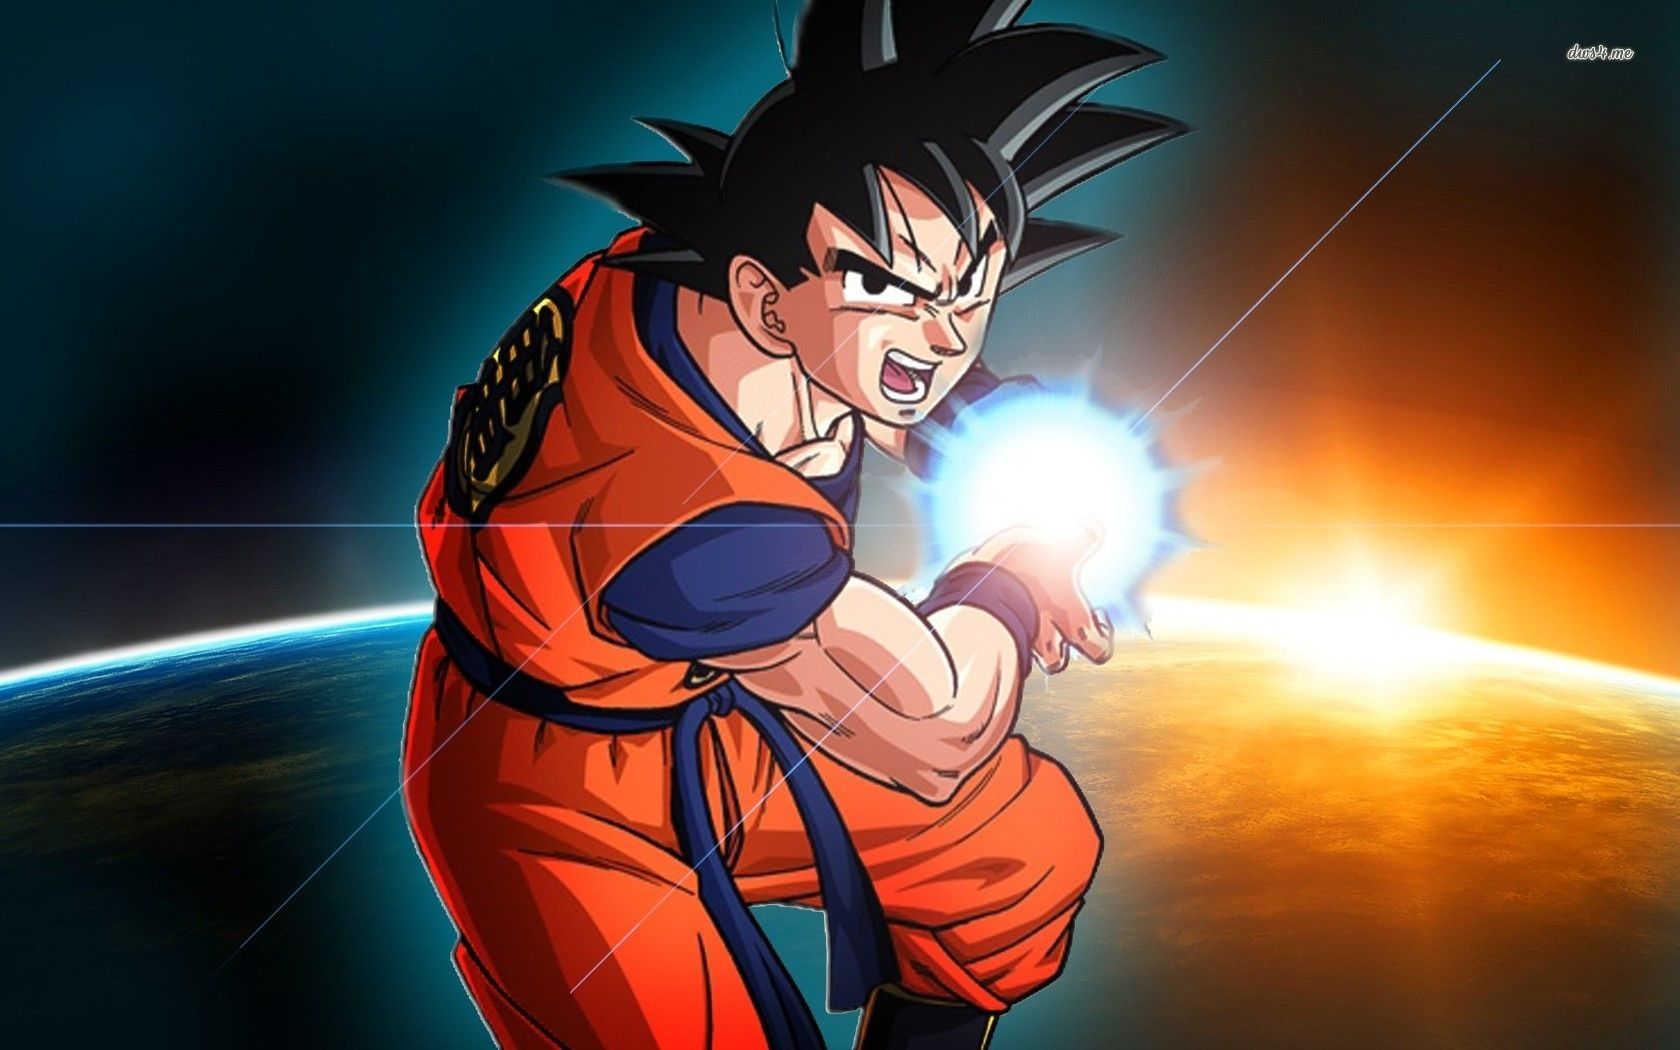 Download Dragon Ball Z Goku Super Saiyan 1000 Wallpaper Gallery